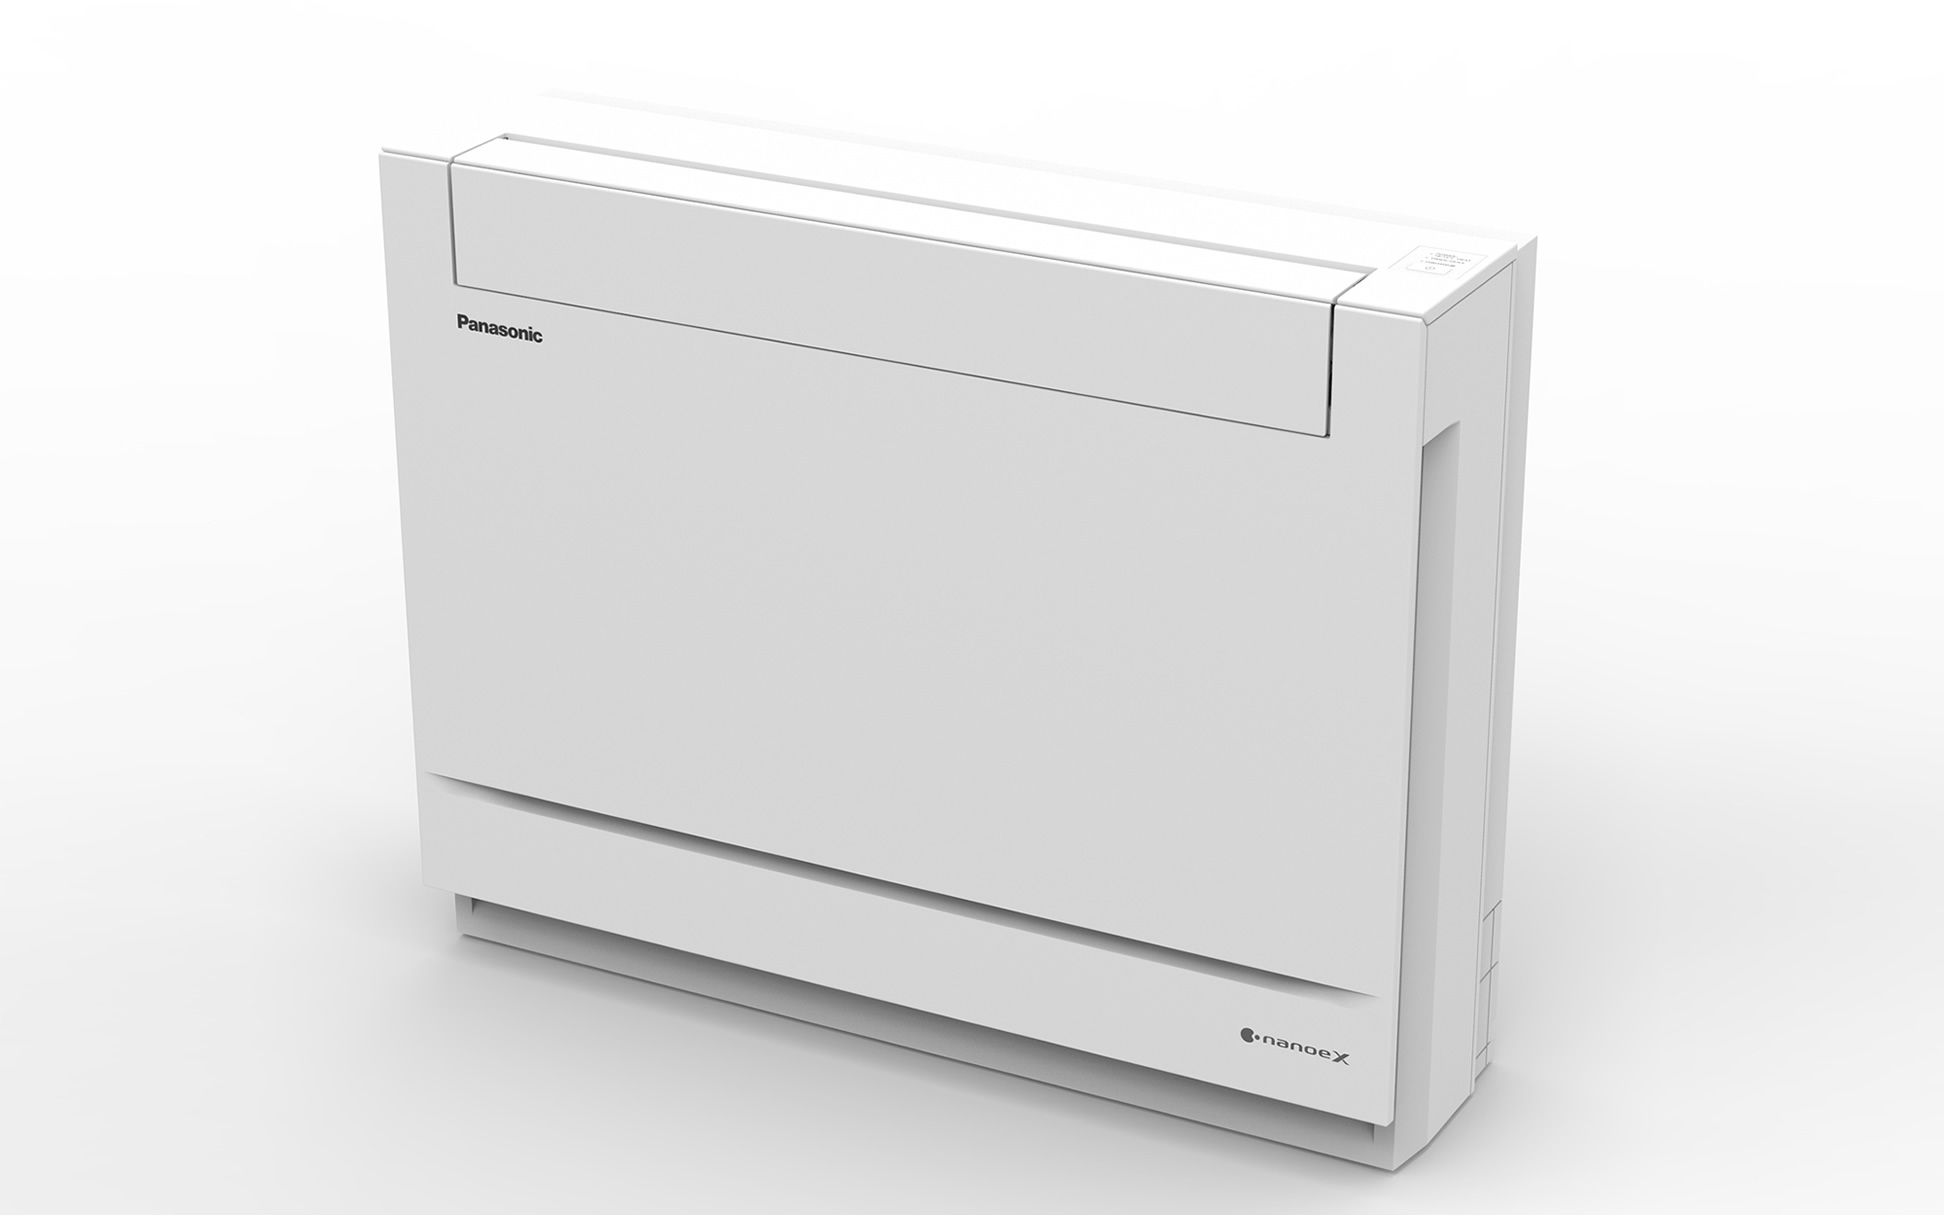 photo:Floor Console Air Conditioner CS-Z35UFEAW/409CY2 series